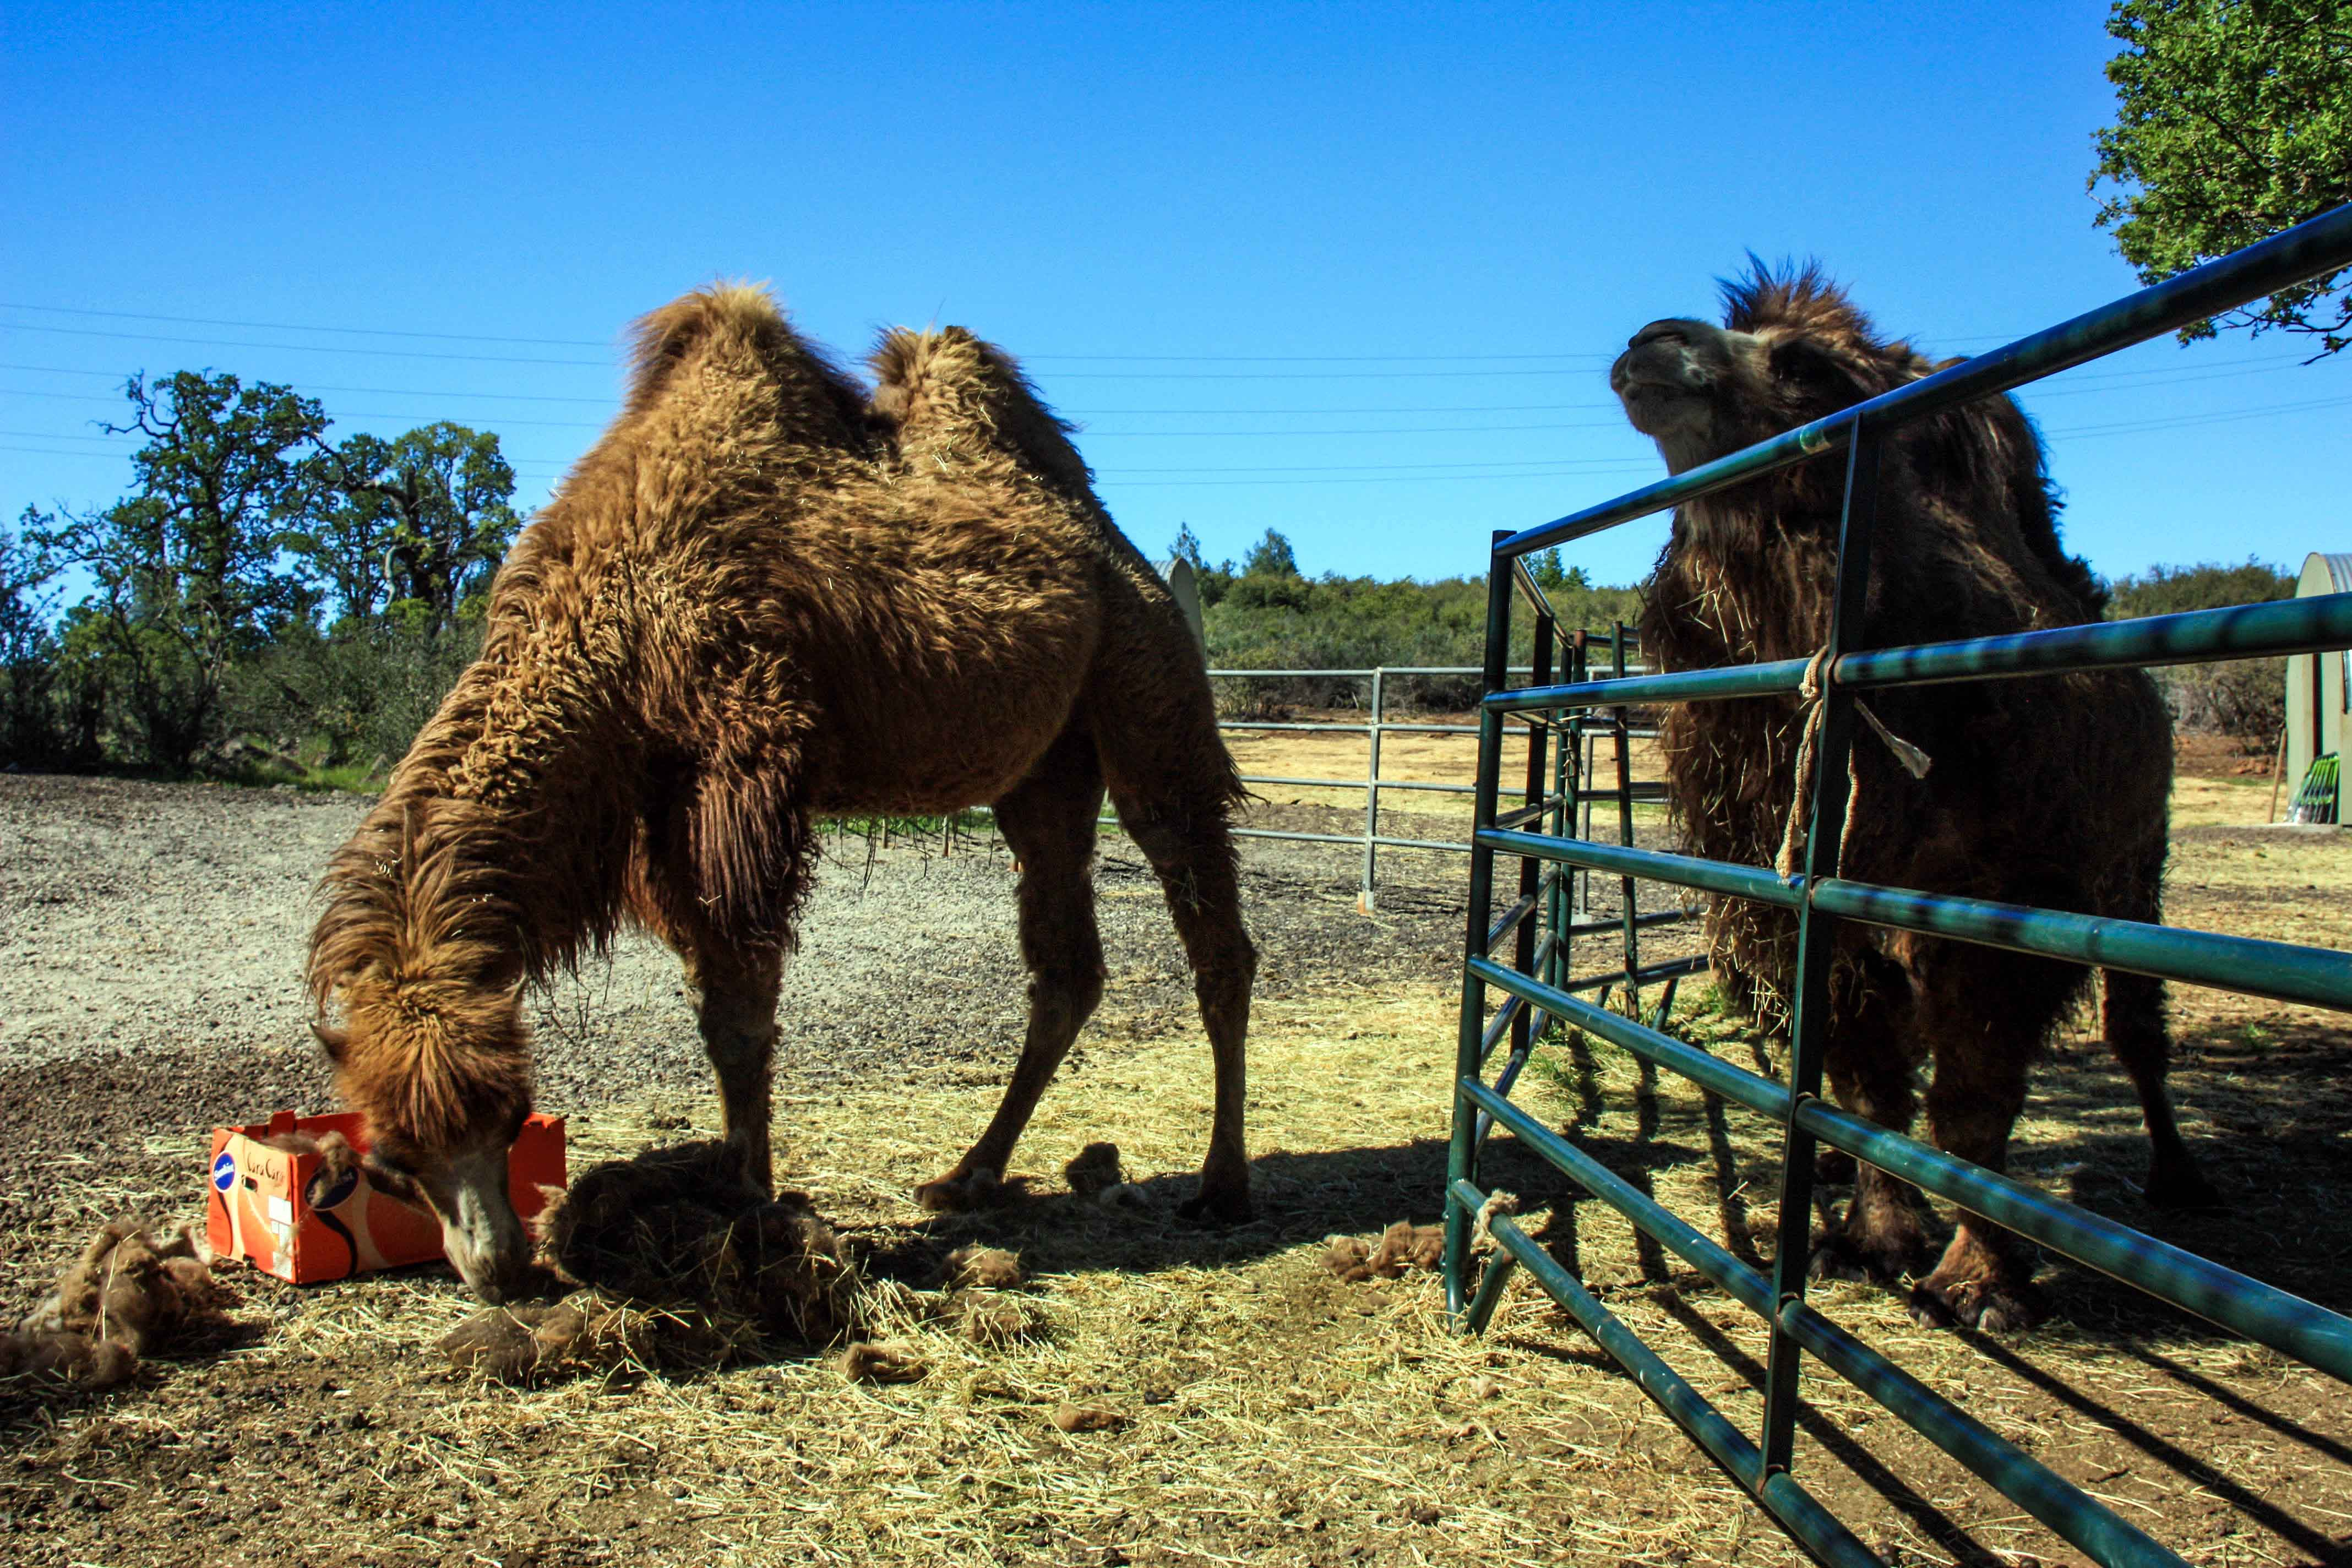 Camel's hair replicates the desert sun and retains them cool in very hot temperatures.